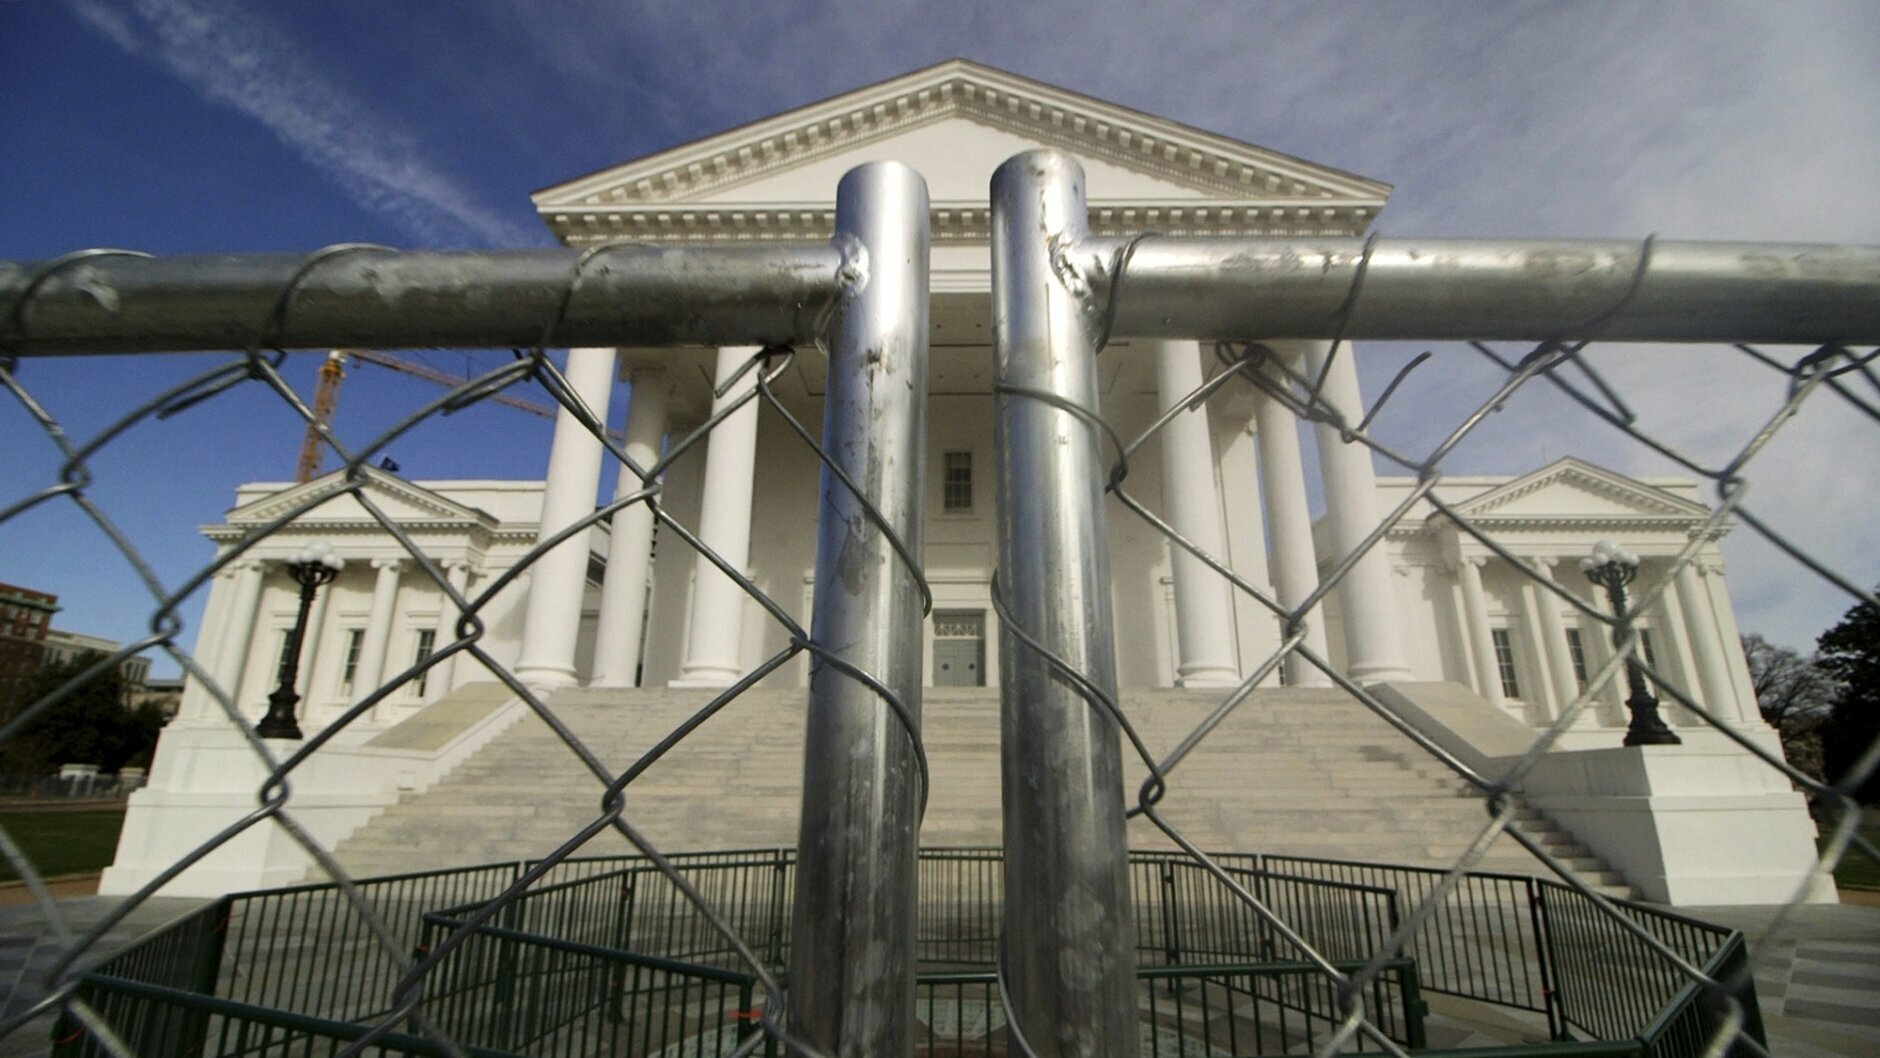 The Virginia state Capitol building is surrounded by fencing, Thursday, Jan. 16, 2020 in Richmond, Va., in preparation for Monday's rally by gun rights advocates. Gun-rights groups are asking a judge to block the Virginia governor's ban on firearms at a massive pro-gun rally scheduled for next week. Gov. Ralph Northam on Wednesday, Jan. 15, announced a state of emergency and banned all weapons from the rally at the Capitol.  (Dean Hoffmeyer/Richmond Times-Dispatch via AP)